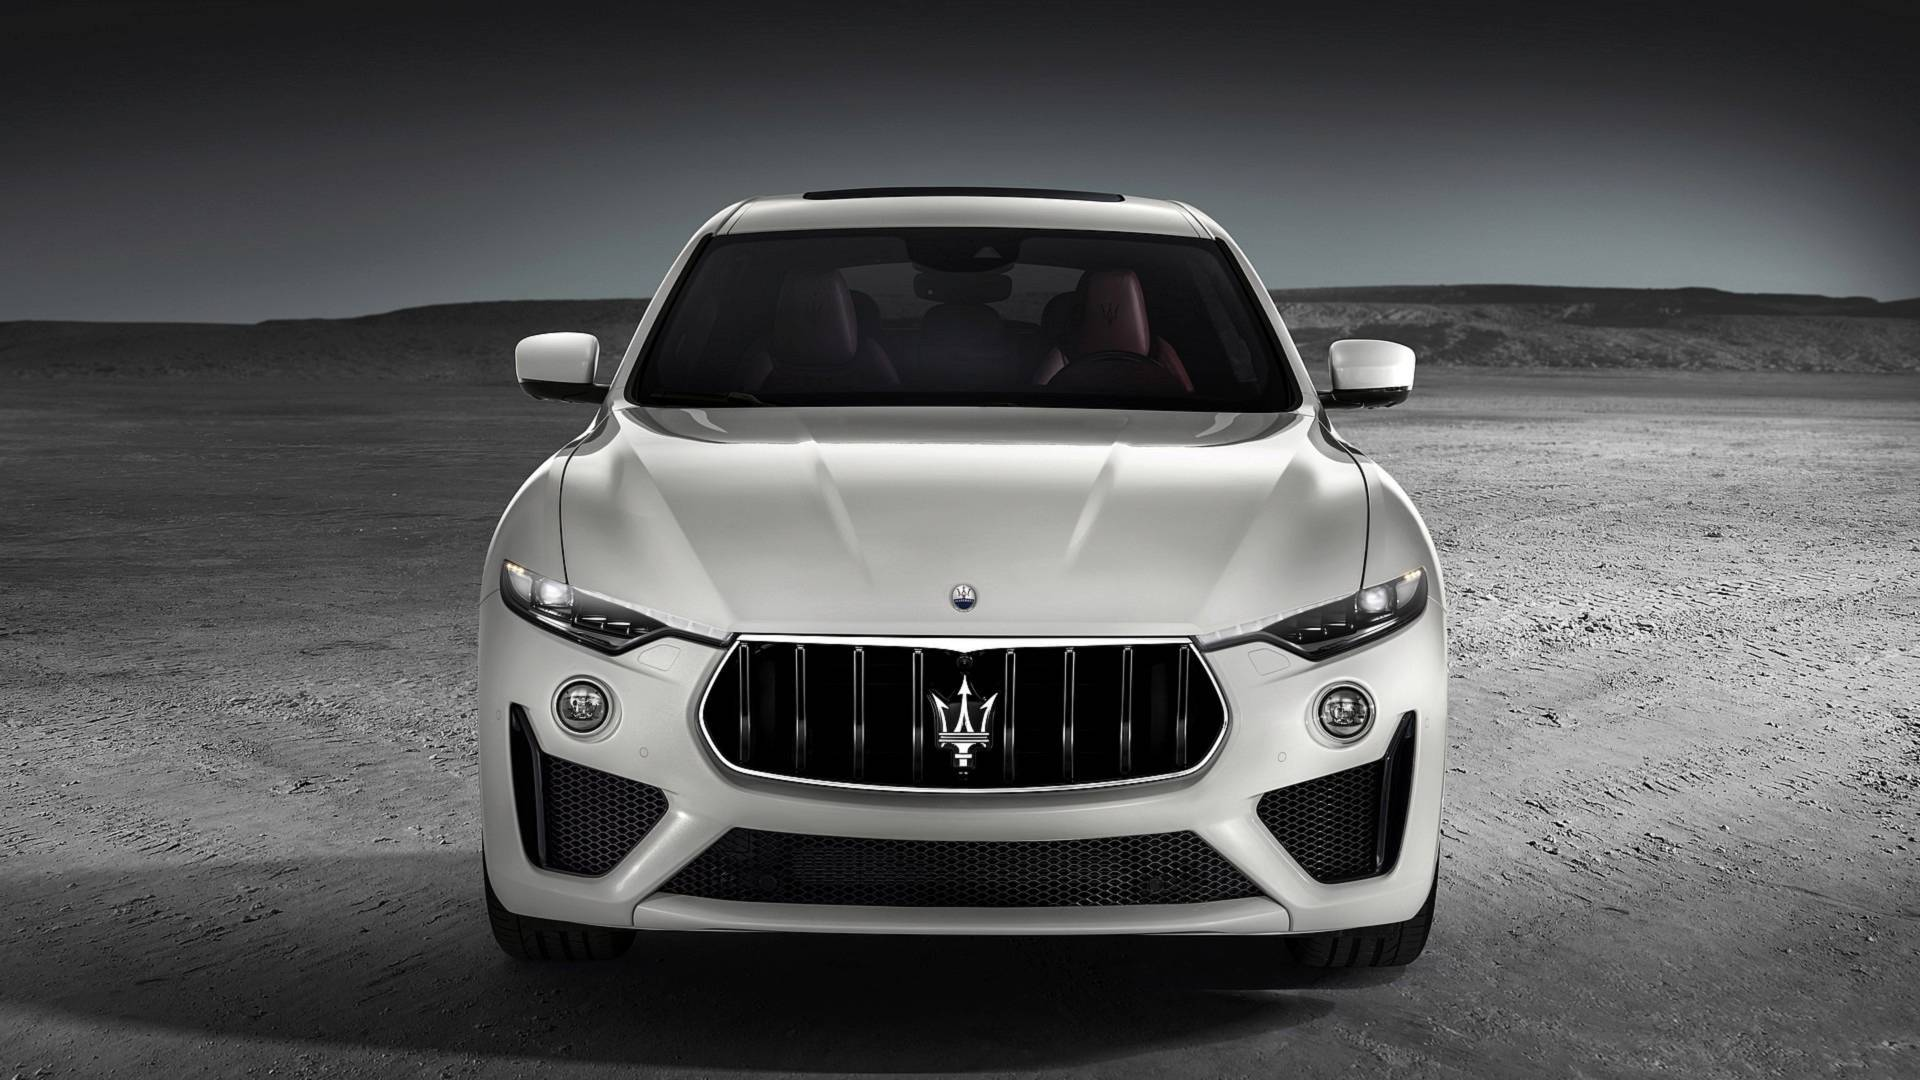 2019 Maserati Levante: Changes, GTS And Hybrid Versions >> 2019 Maserati Levante Gts Debuts At Goodwood Fos With 550 Hp